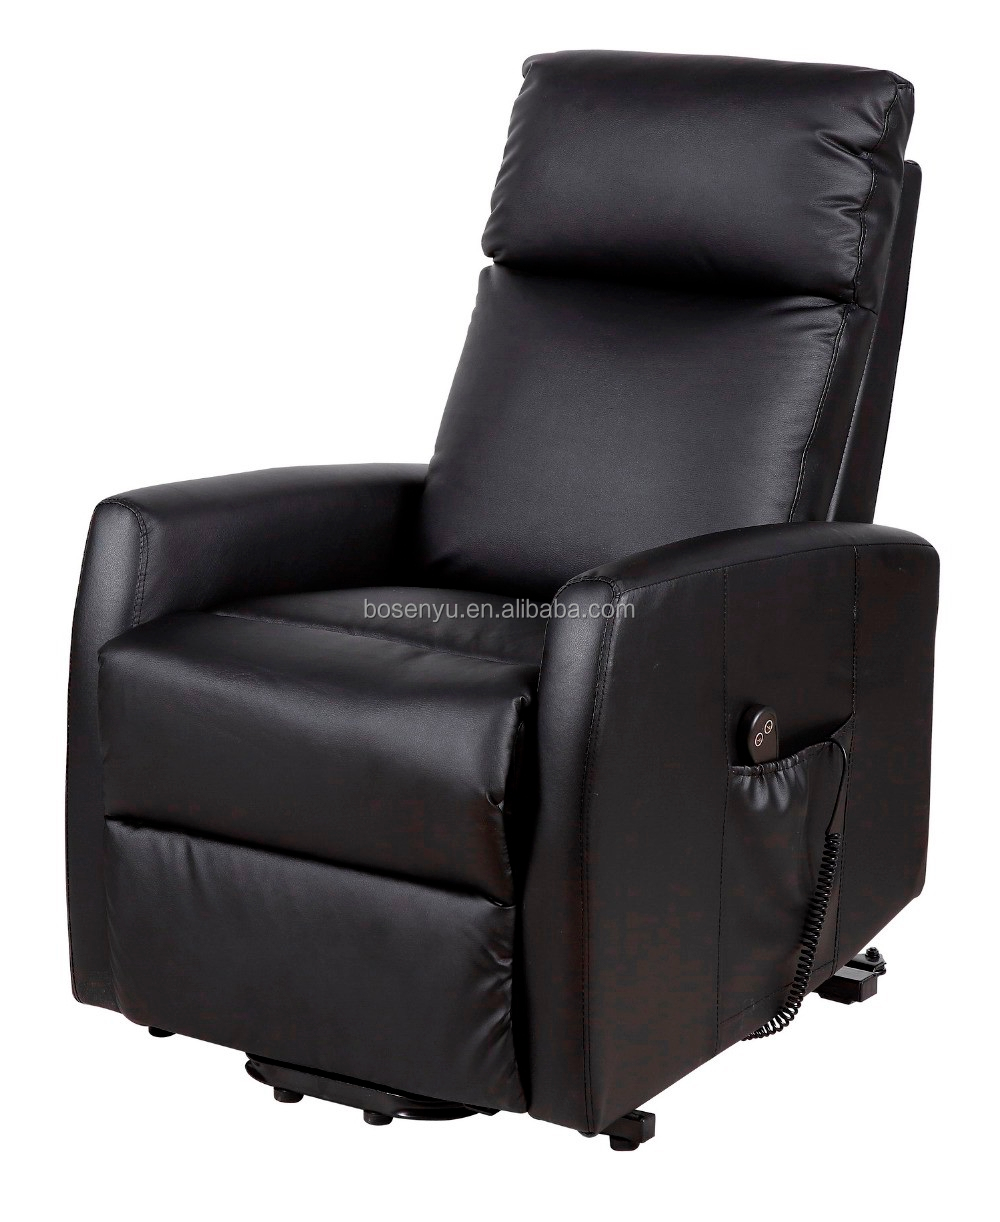 Cheap electric recliner chair single motor for chair